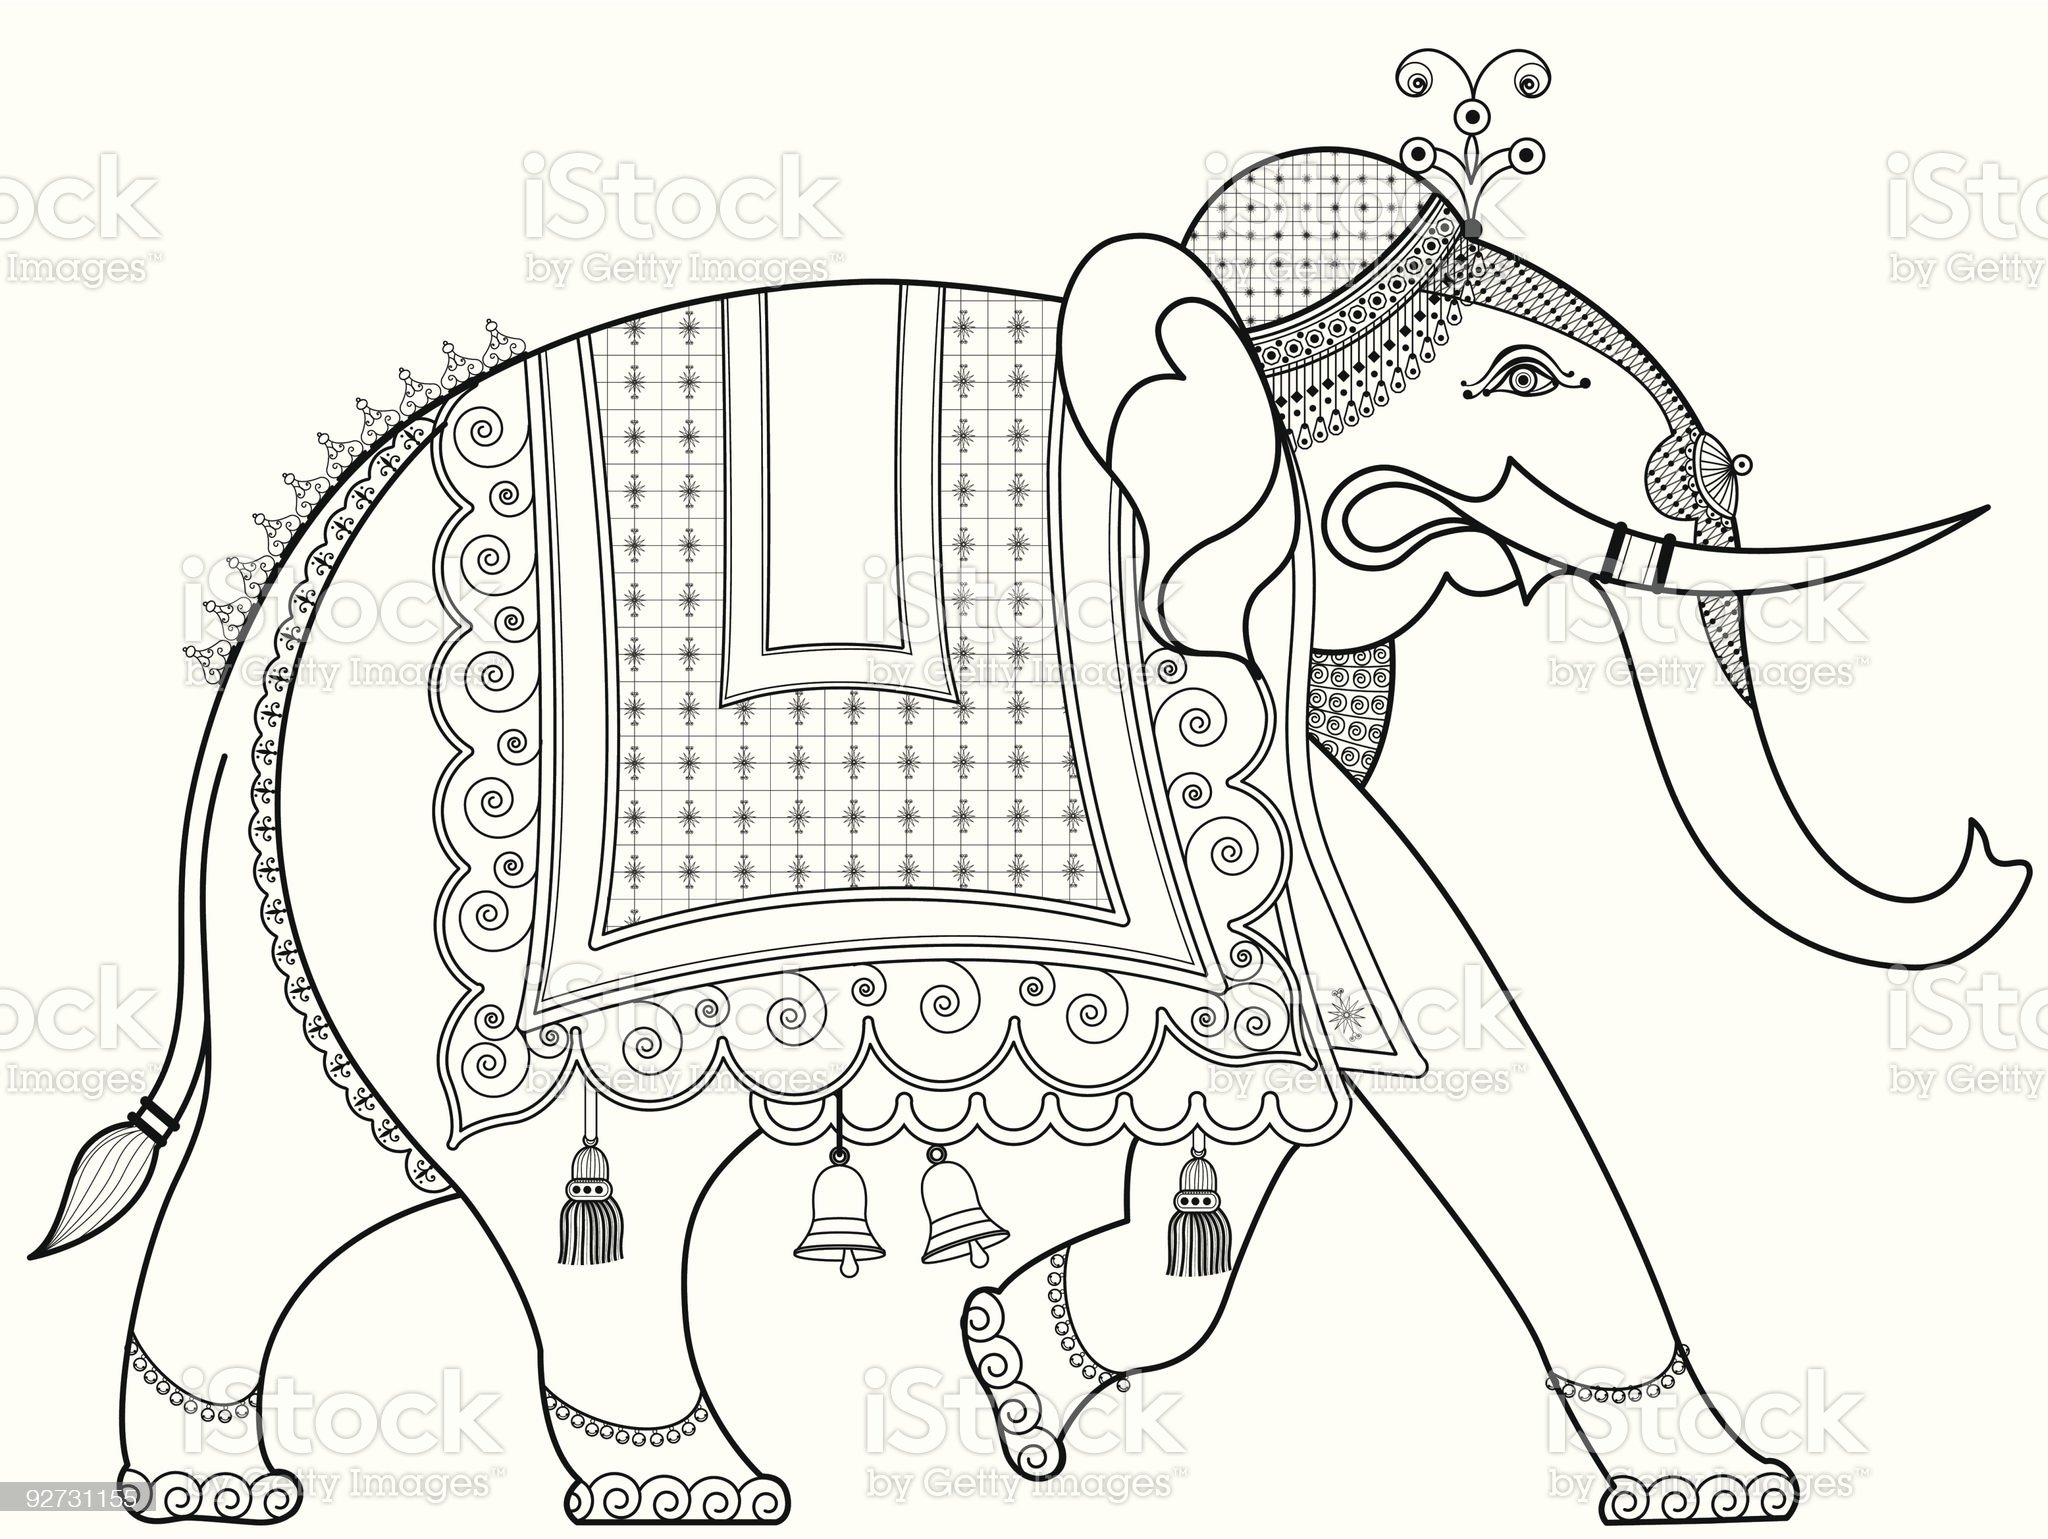 A drawing of an adorned Indian elephant royalty-free stock vector art